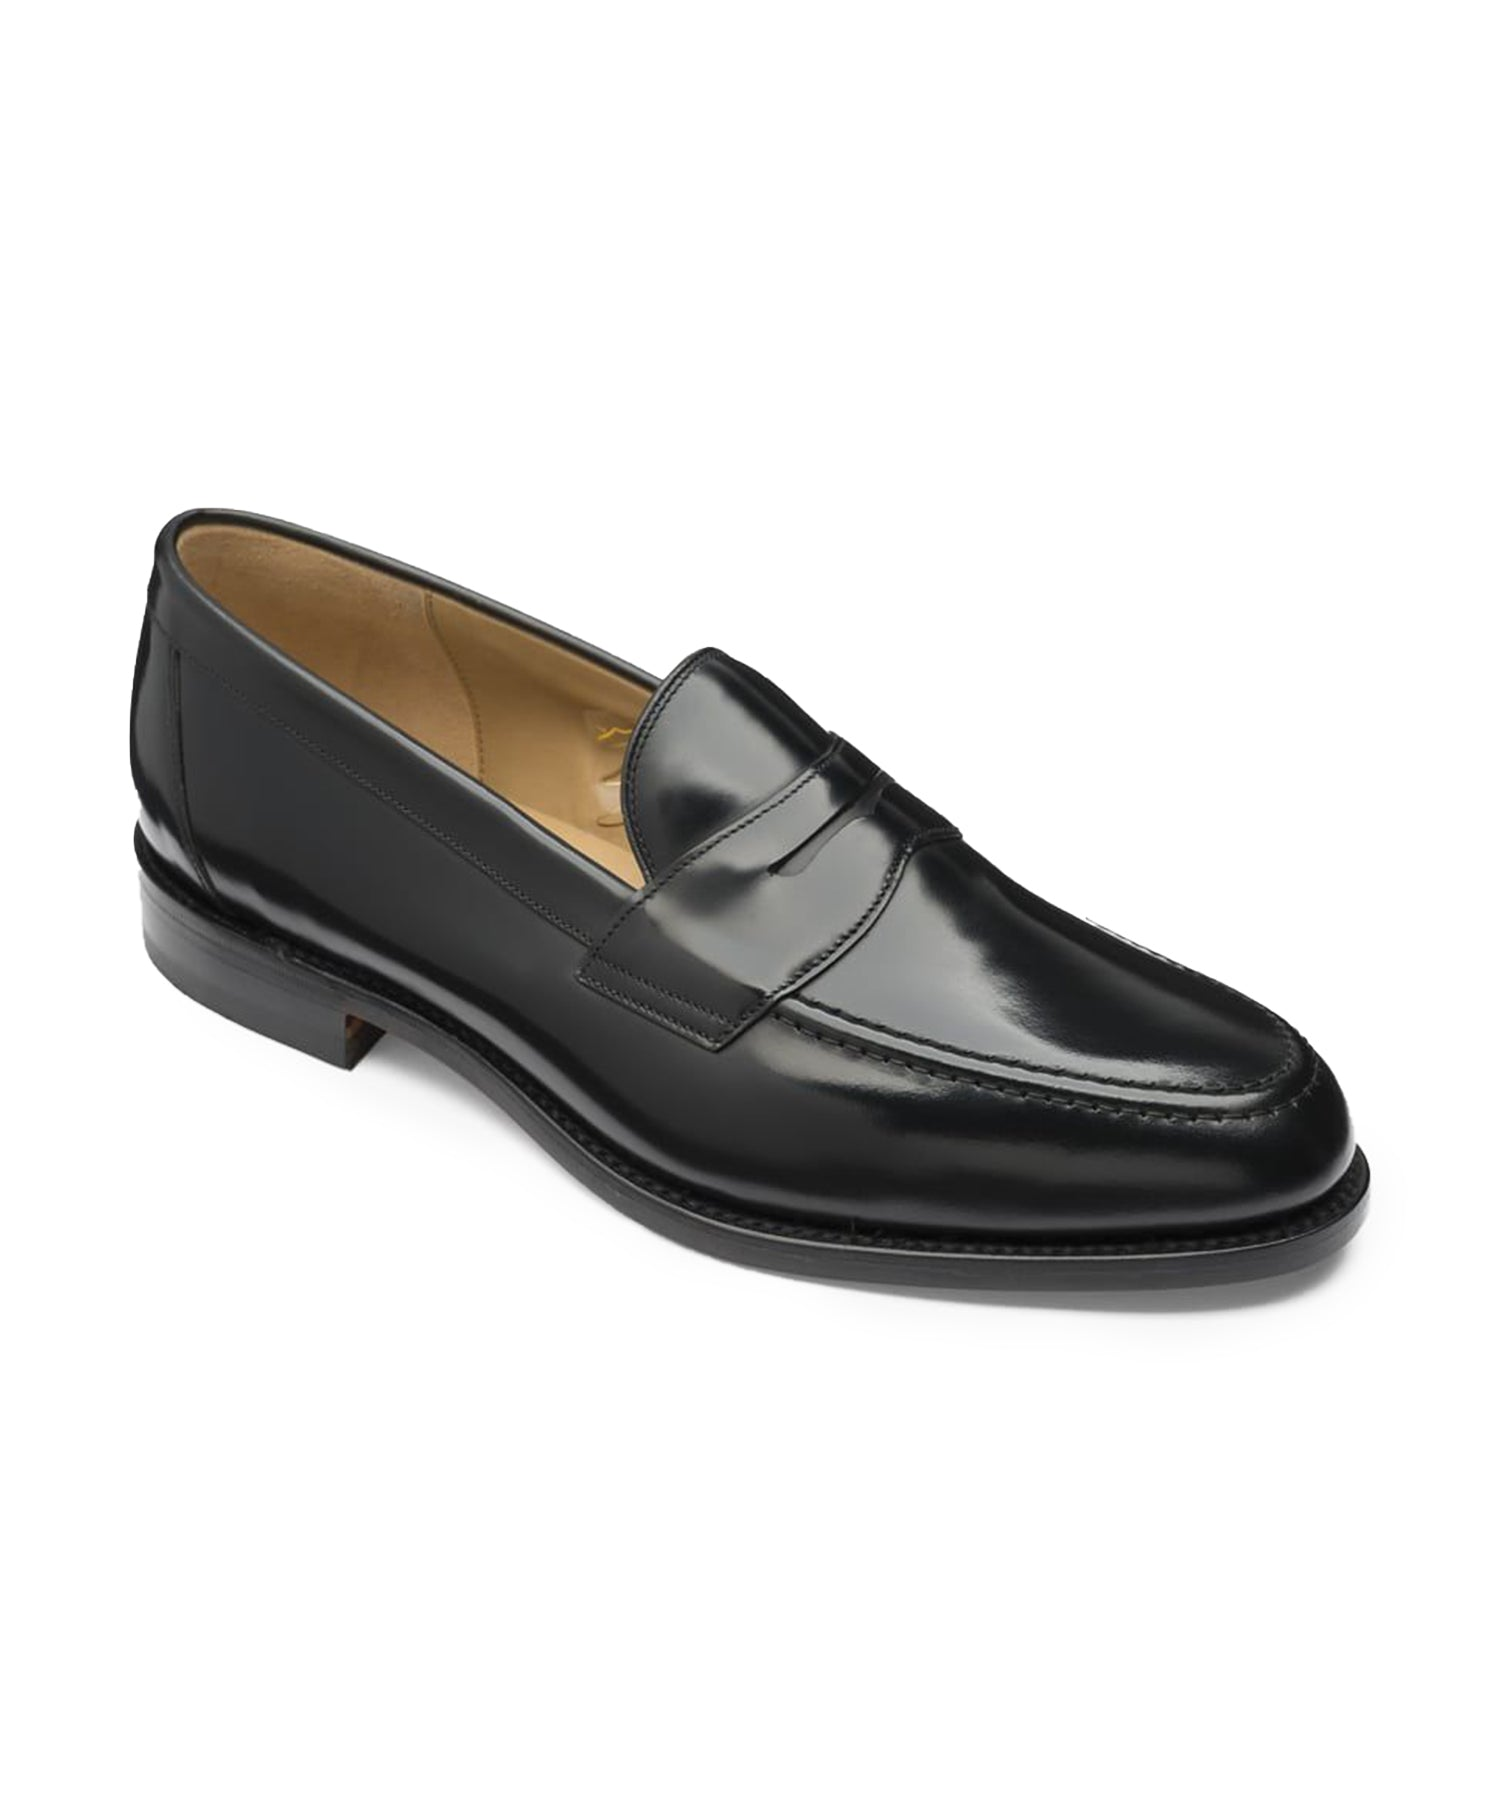 Loake Imperial Loafer in Black Polished Calf Leather